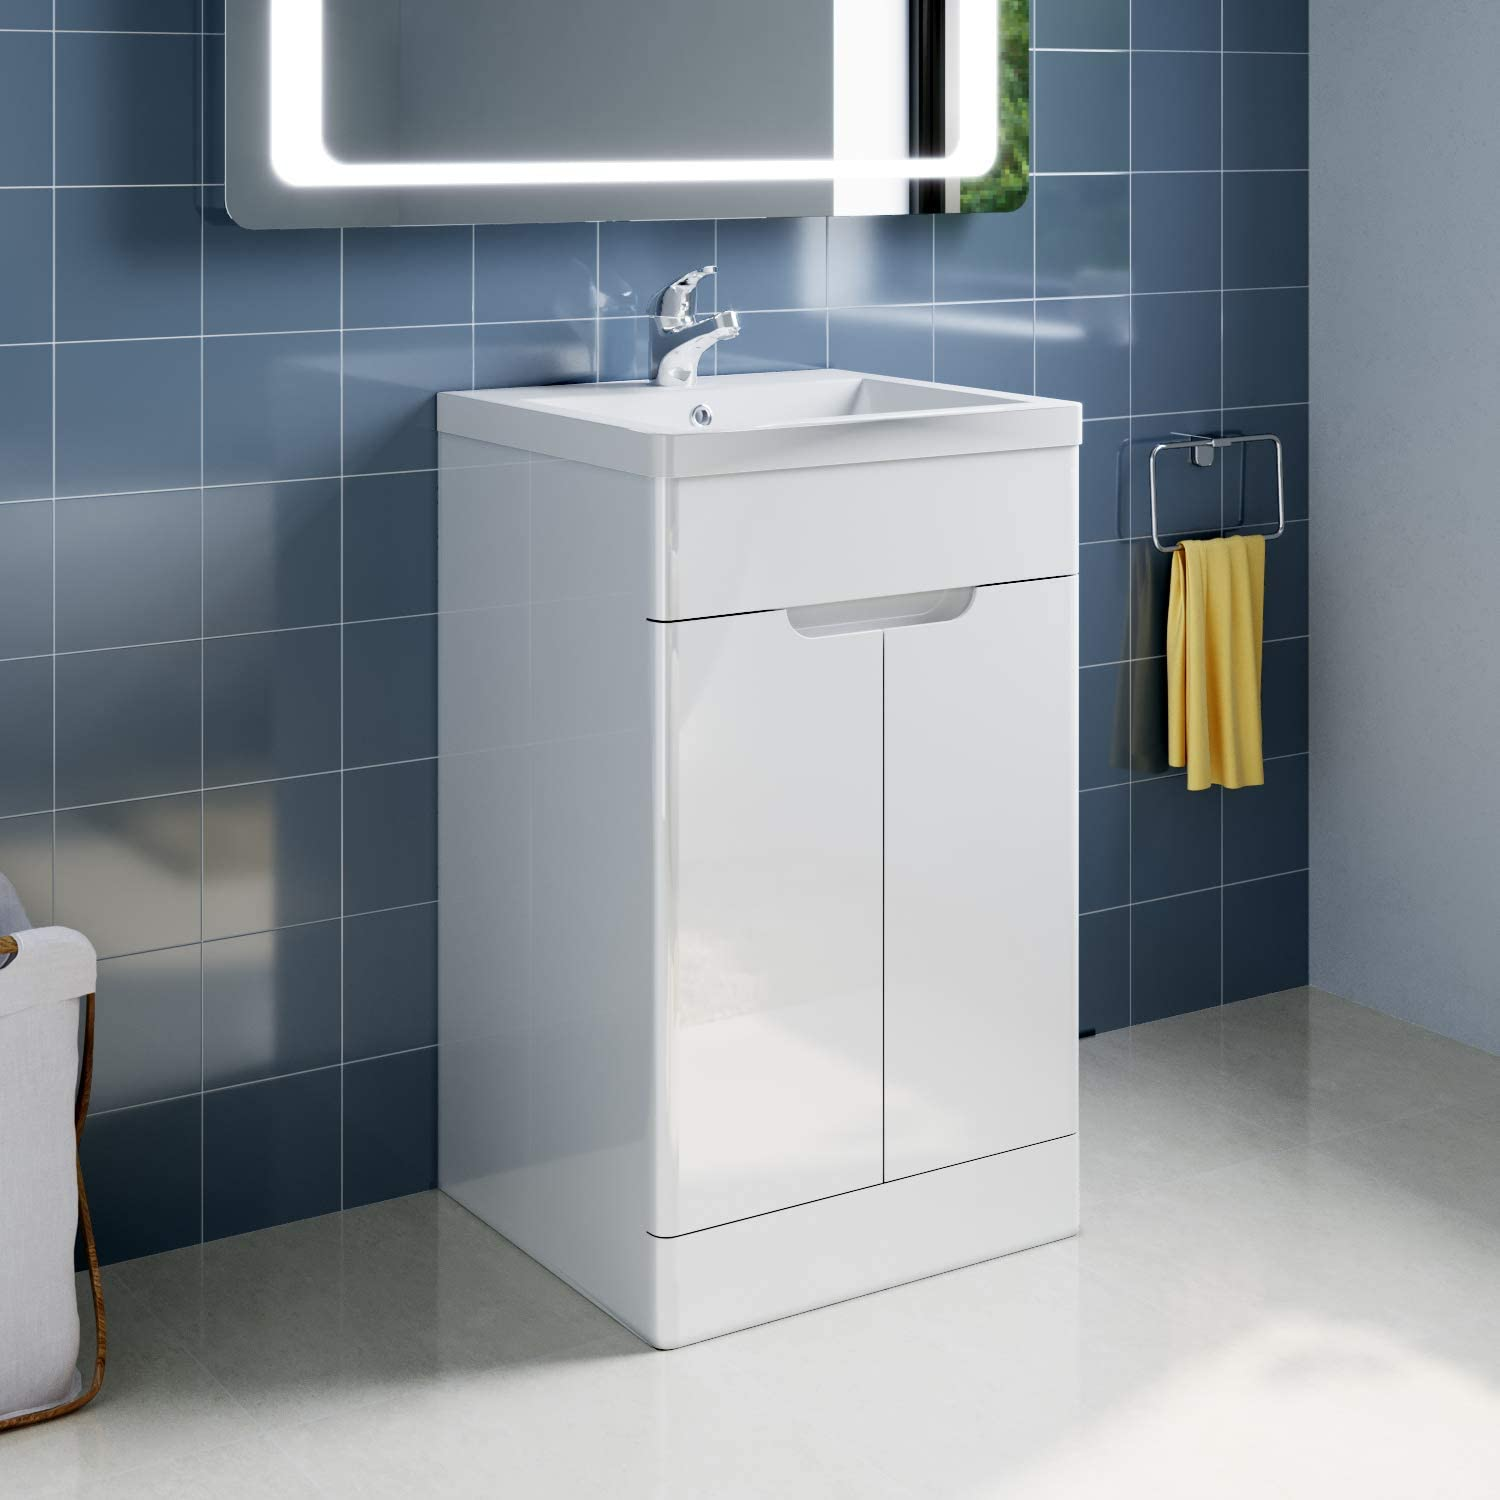 Elegant 490mm Vanity Cabinet With Sink High Gloss White Bathroom Vanity Sink Units With 2 Soft Close Door Without Handle Polyresin Basin Free Standing Basin Vanity Cabinet Units Amazon Co Uk Kitchen